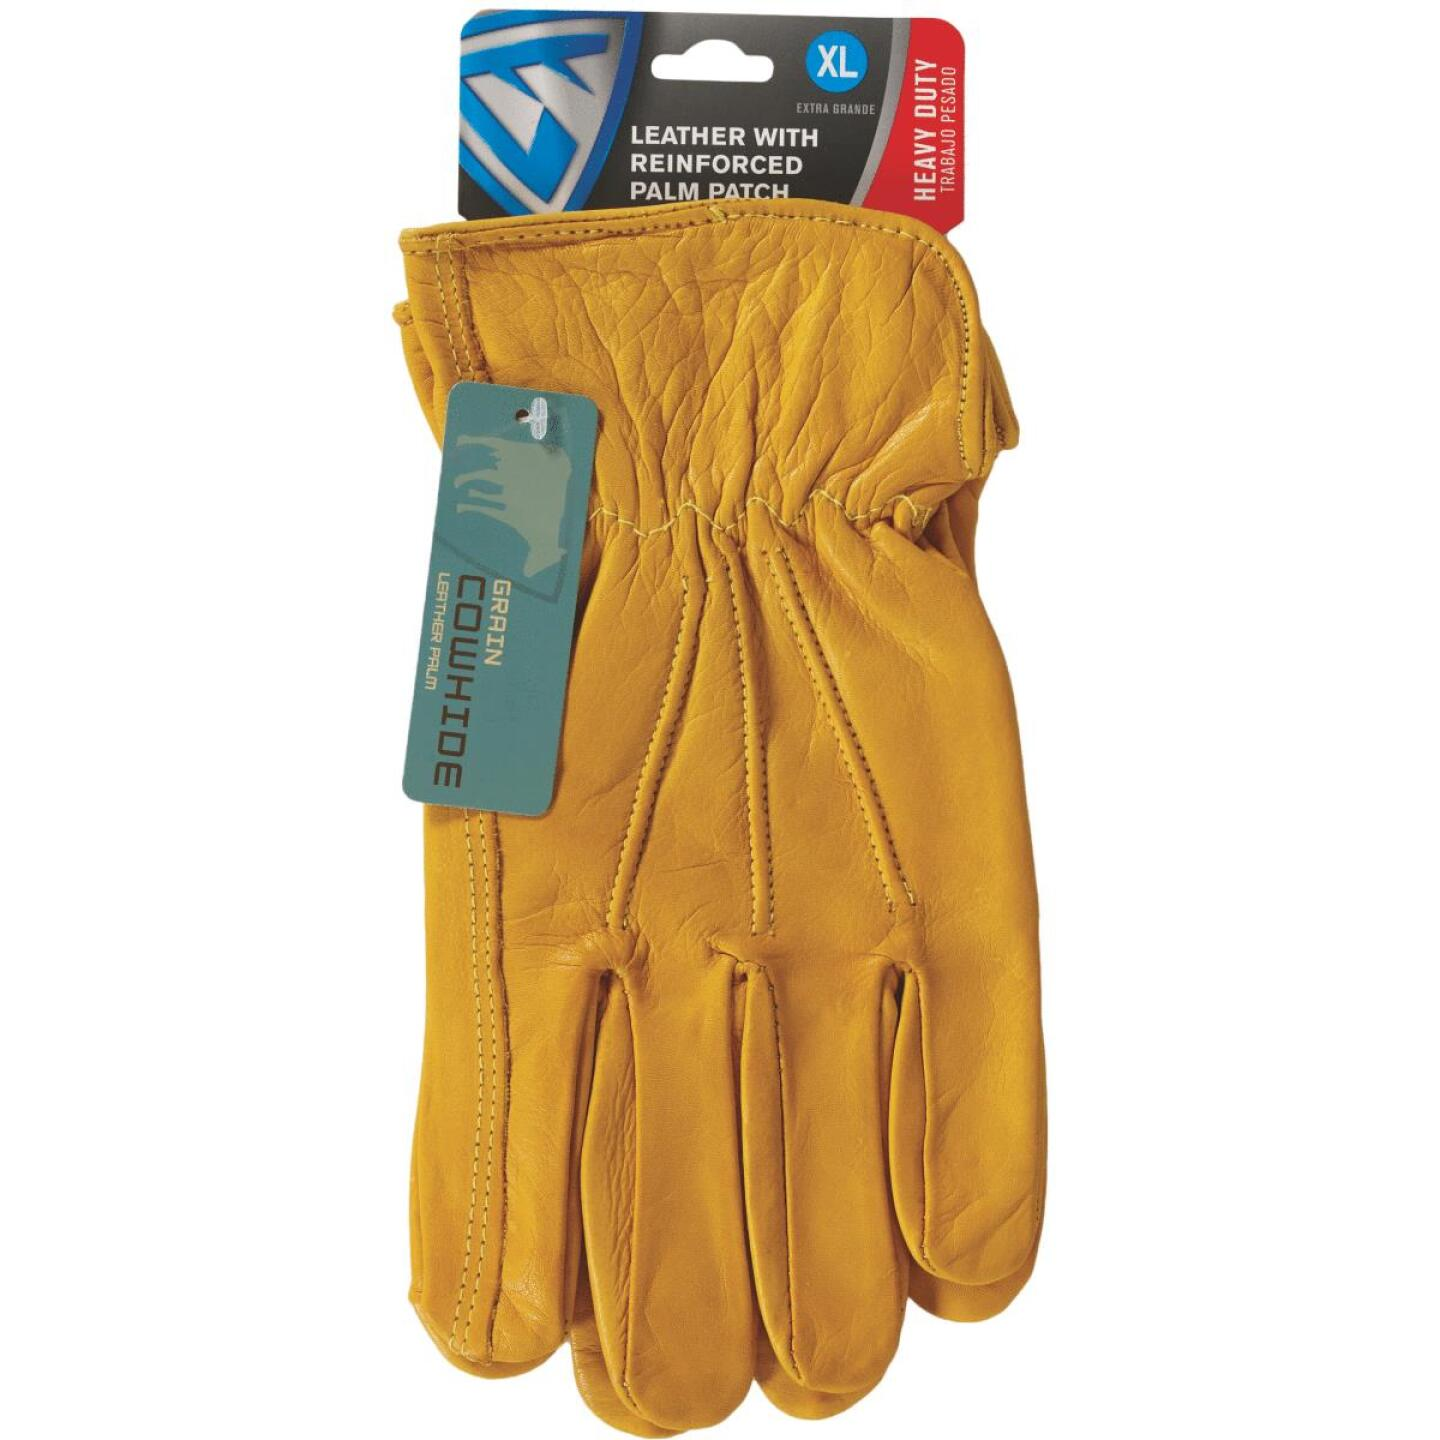 West Chester Protective Gear Men's XL Grain Cowhide Leather Work Glove Image 2